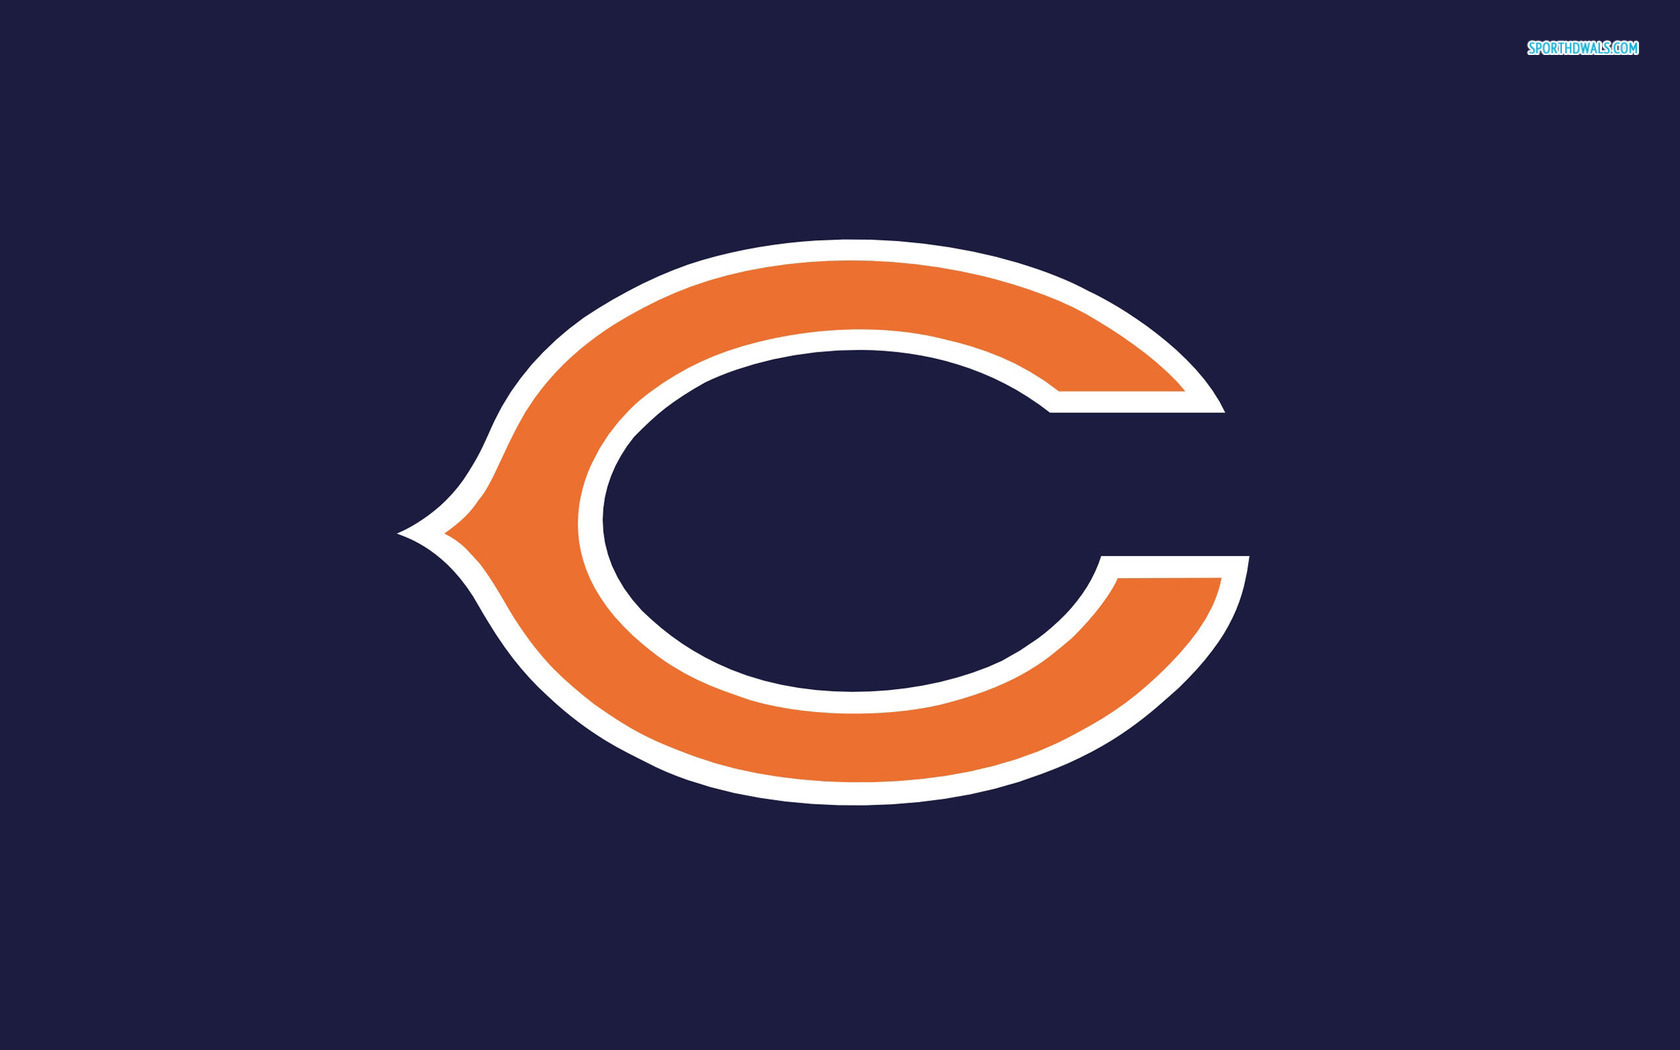 More Chicago Bears wallpapers 1680x1050